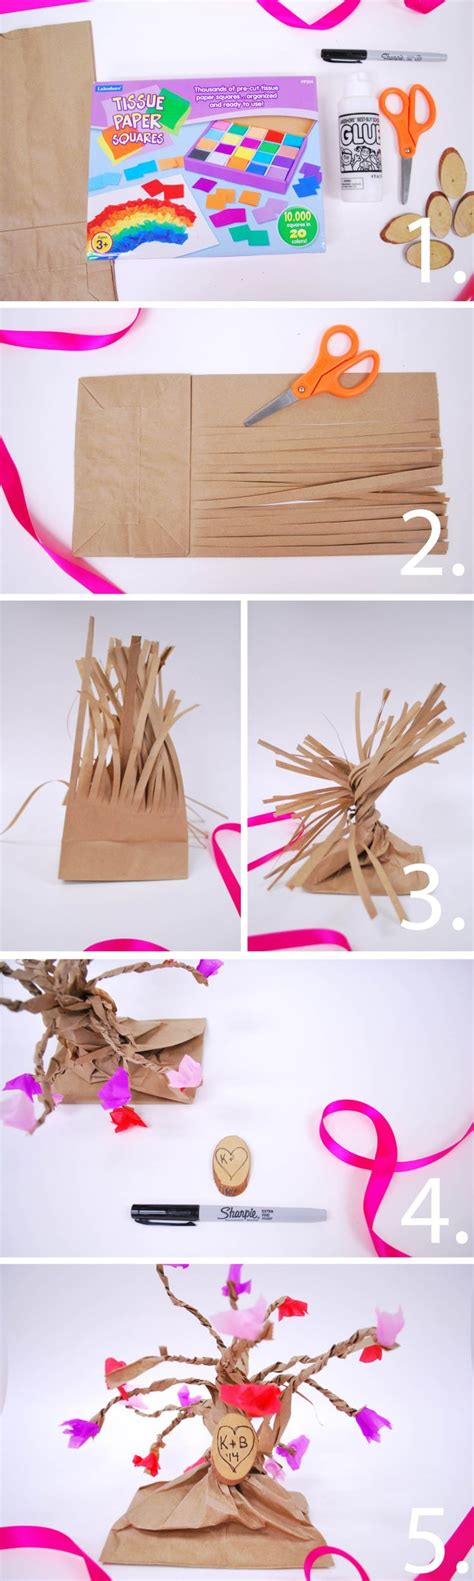 paper lunch bag crafts 17 best images about paper lunch bag crafts on